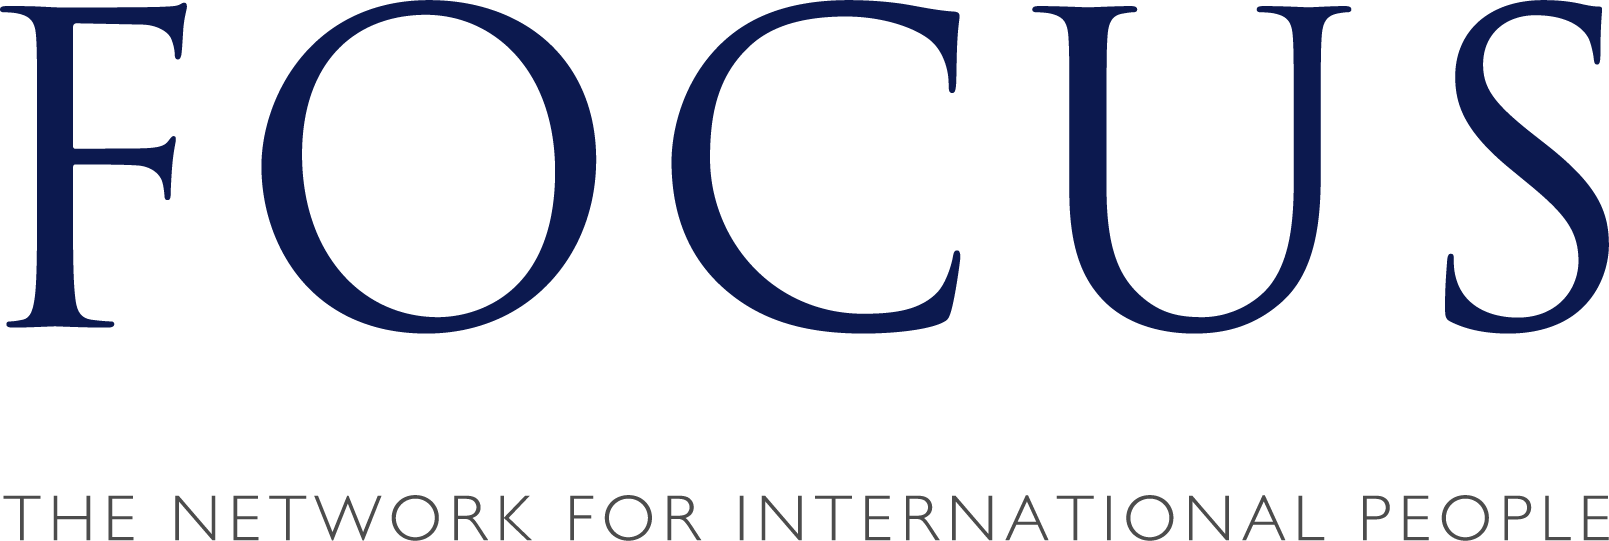 Logo Focus the Network for International People